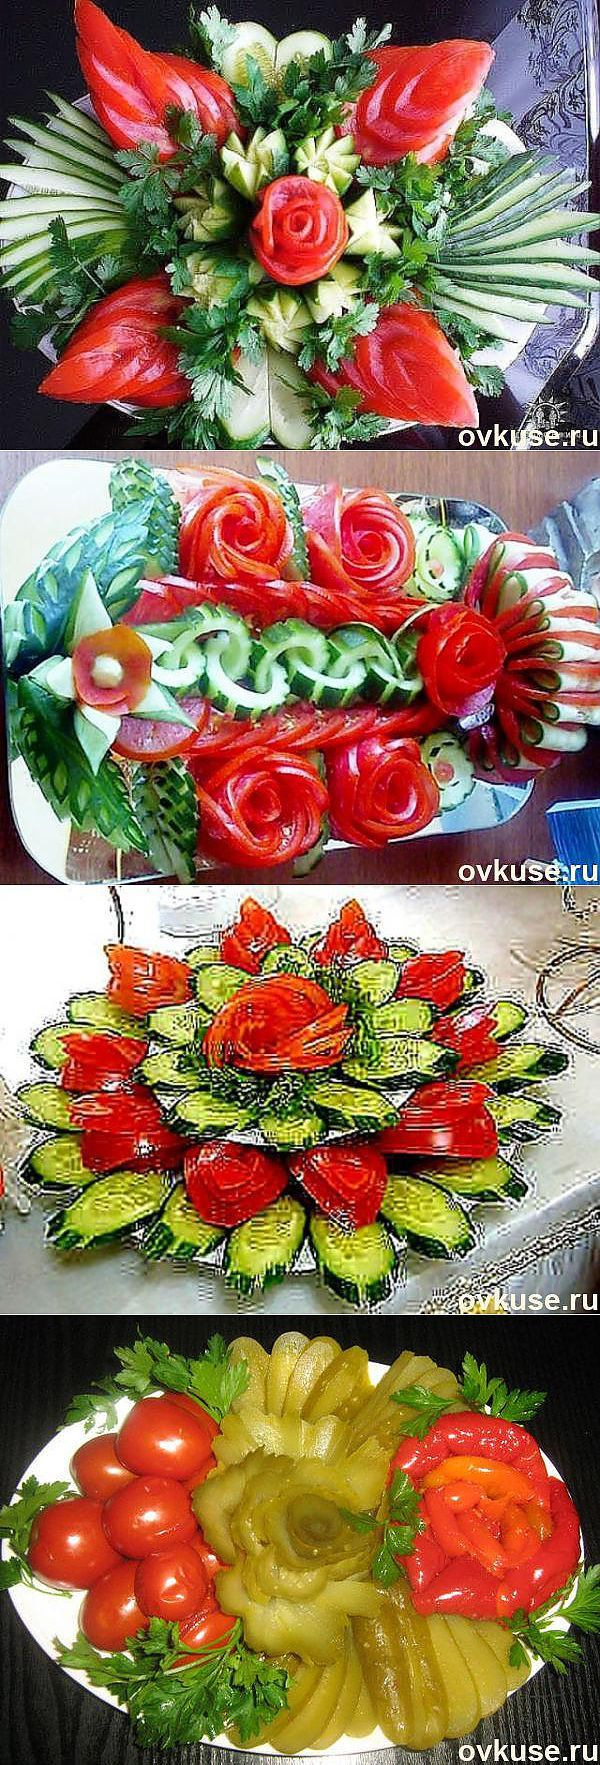 Beautiful ▲ ▲ supply of vegetable cuts - Simple recipes Ovkuse.ru